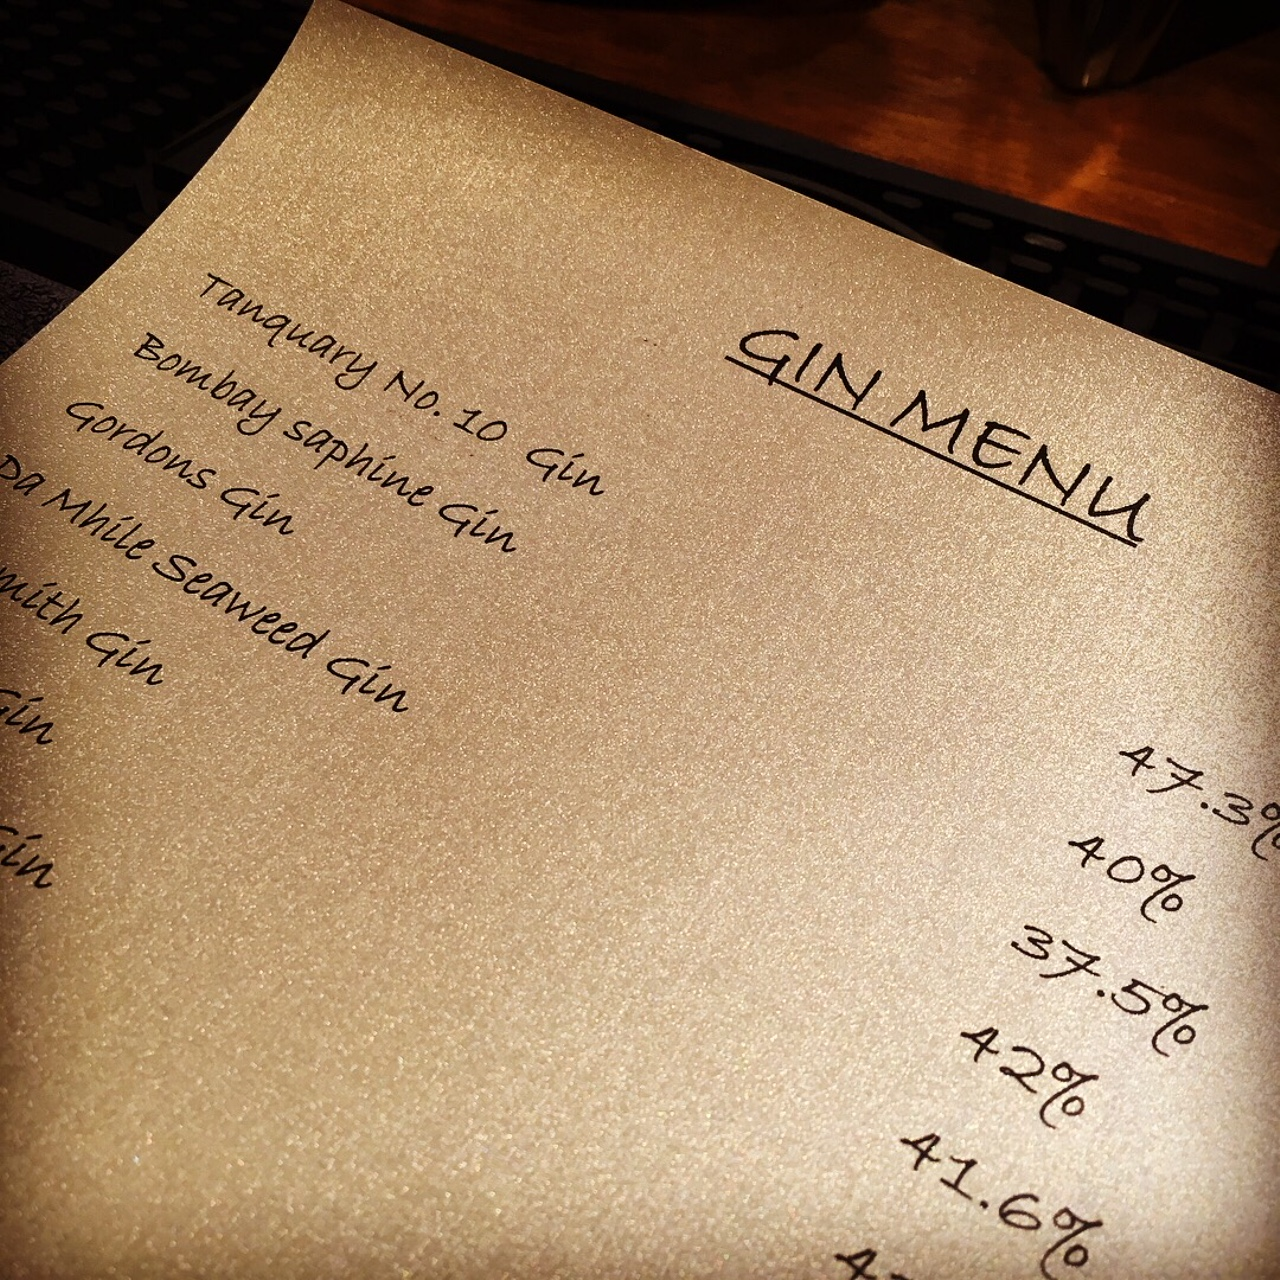 - The biggest news of the month was the announcement that our neighbour and local pub - The Old Ship - introduced their new 'Gin Menu'.They now have a selection of over 30 gins from around the world, and Jasmine has volunteered to test each one on their behalf...